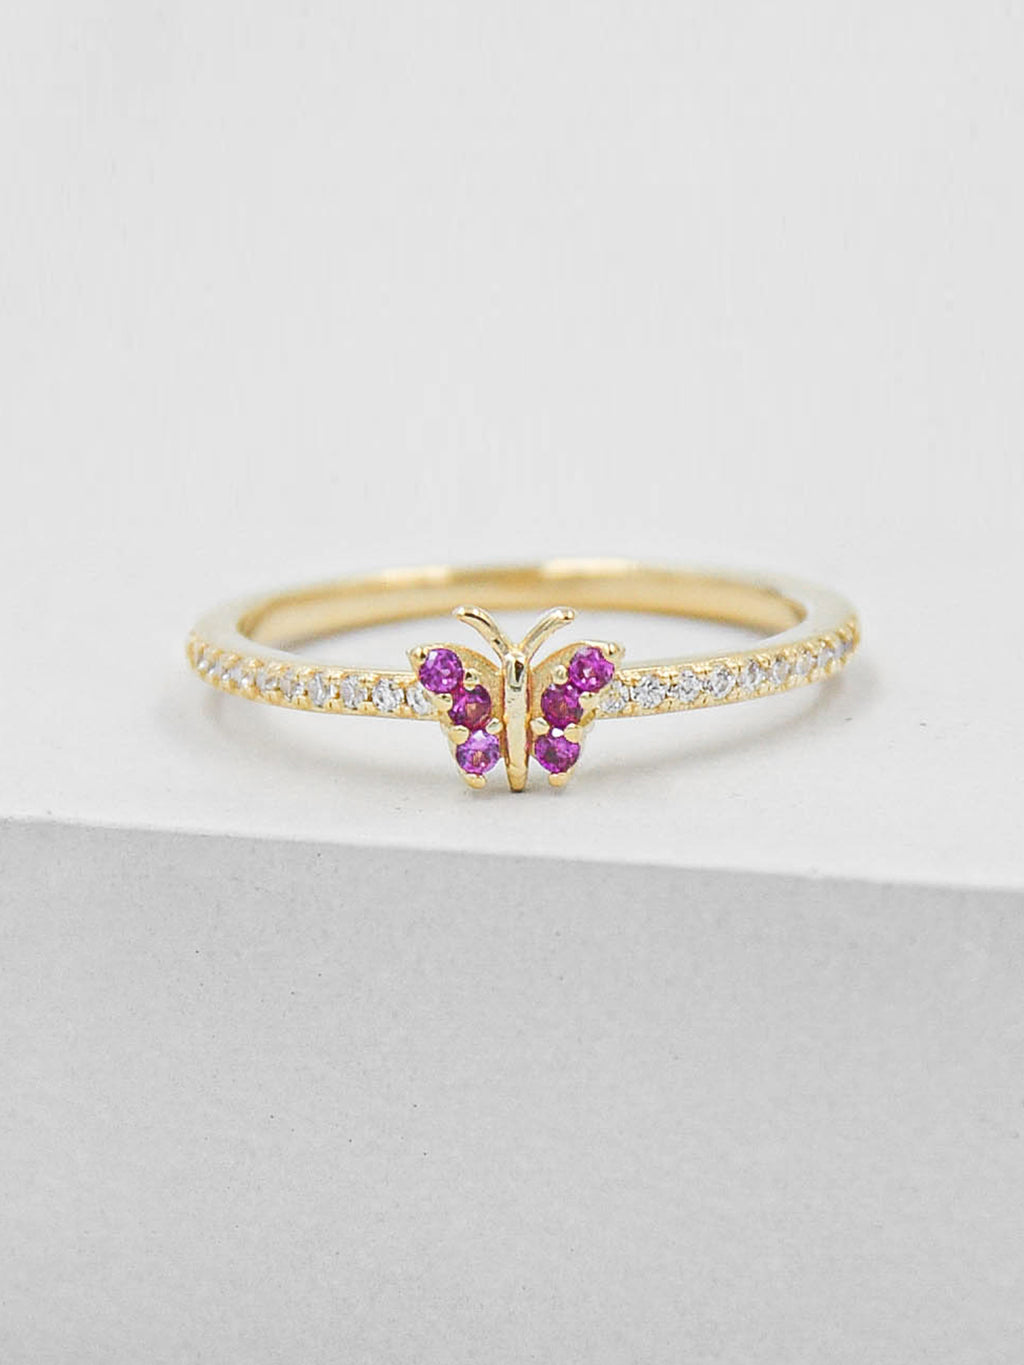 Gold Plated Butterfly Design Ring with Pink and White CZ by The Faint Hearted Jewelry